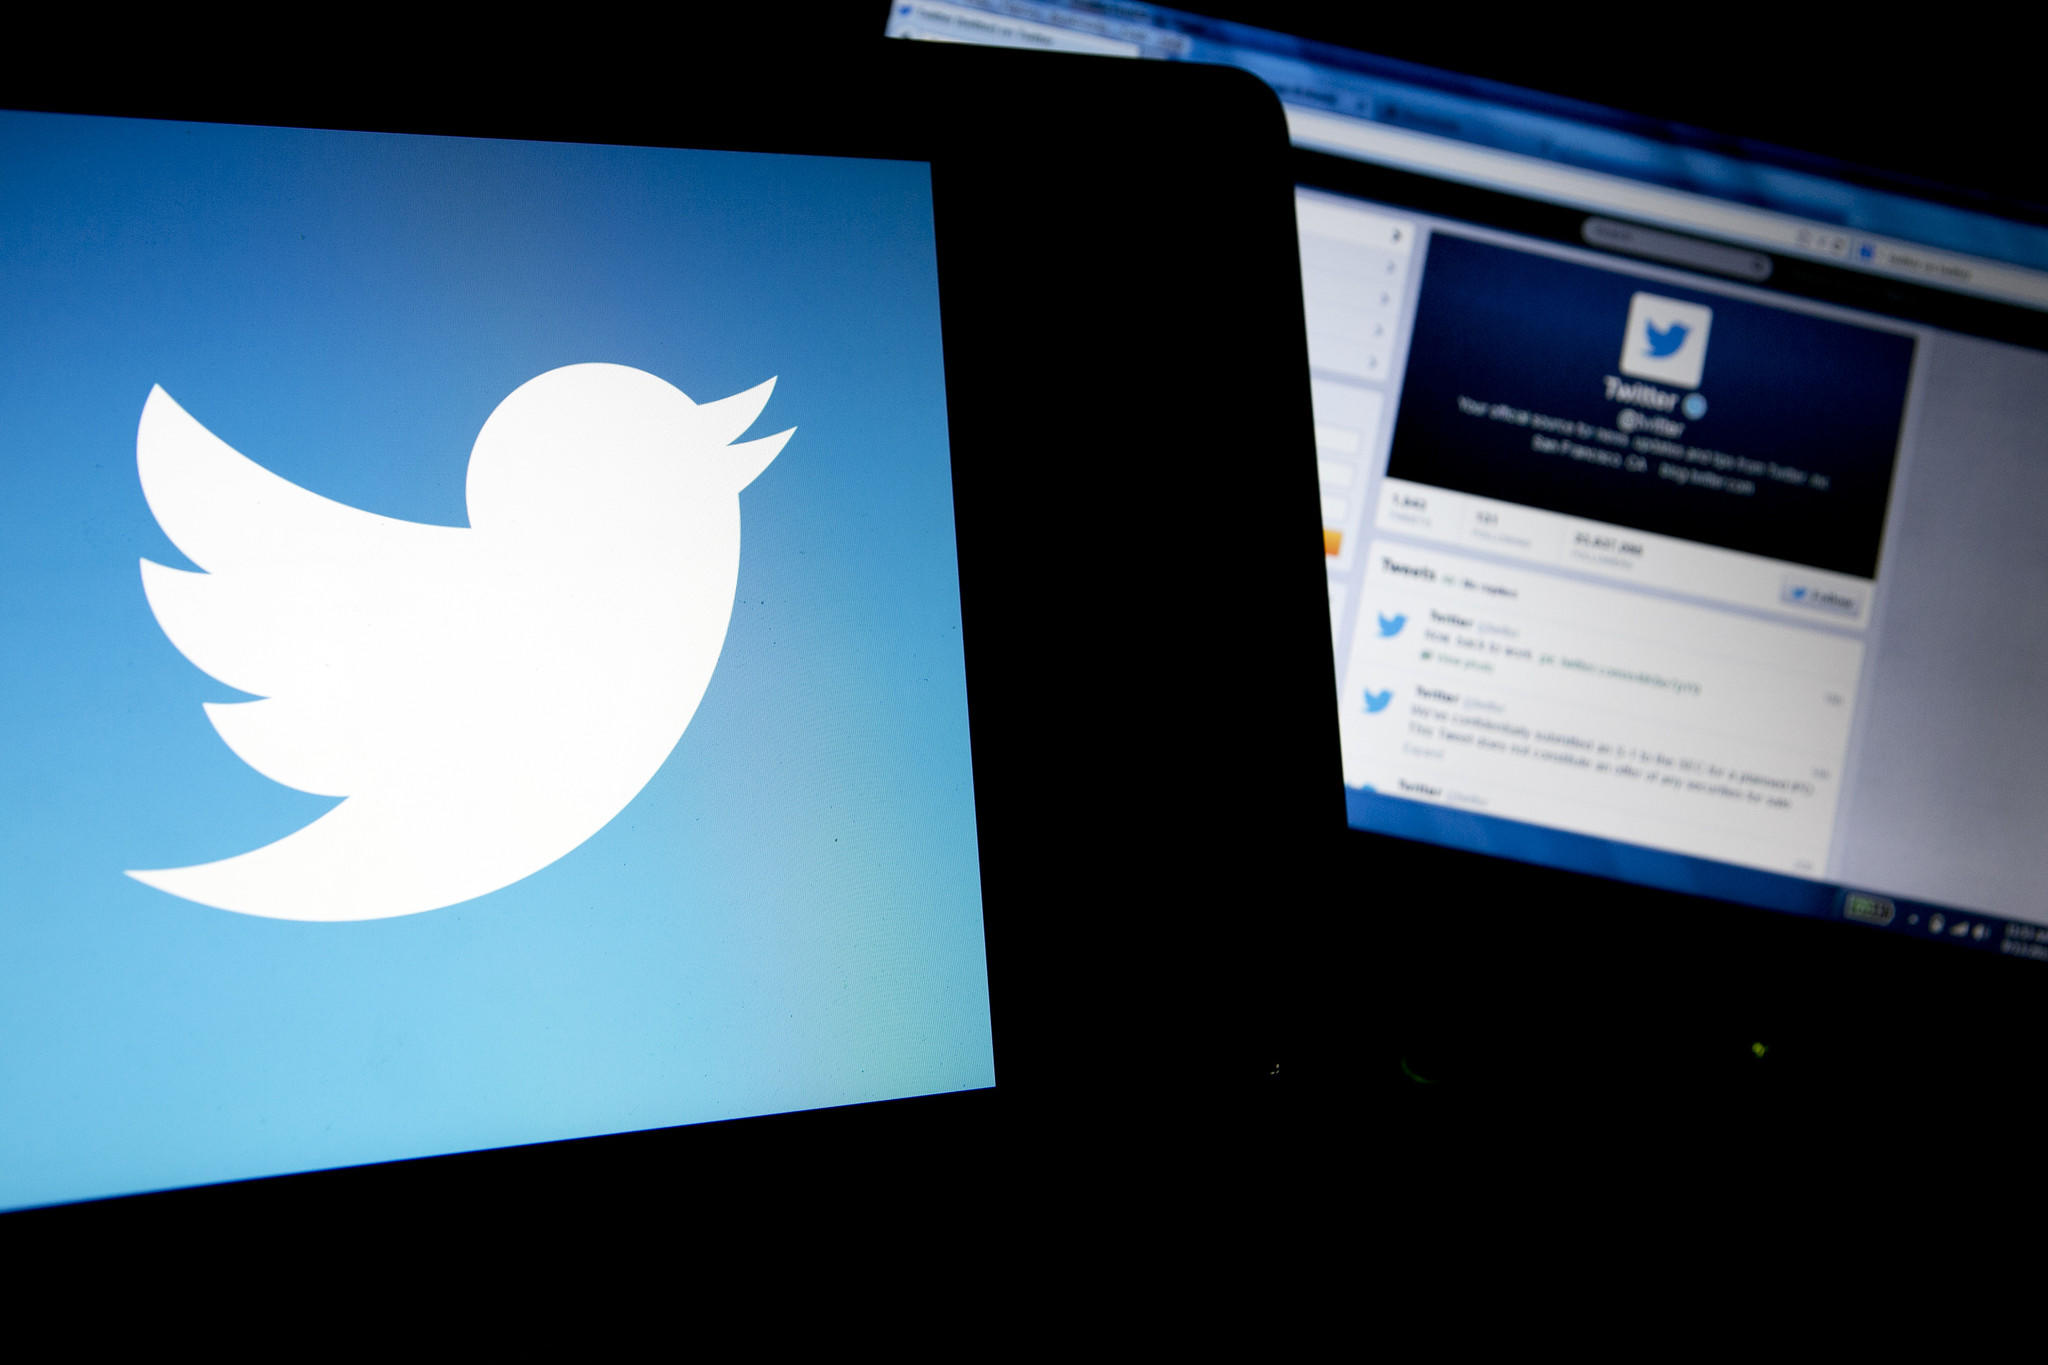 Twitter is reportedly testing a new look for its user profile pages. The redesign resembles that of profile pages on other social networks, including Facebook.